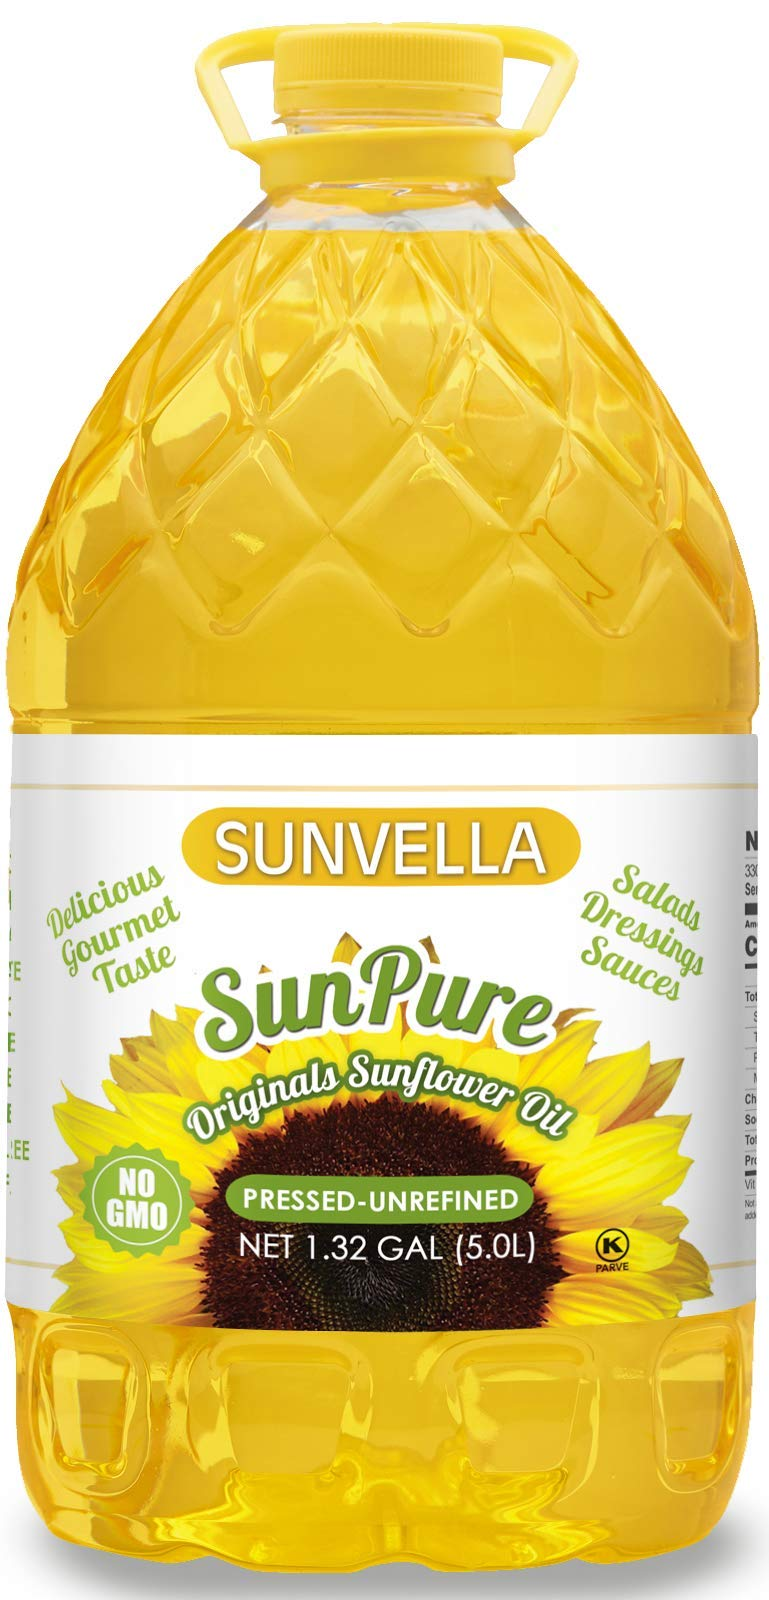 SUNVELLA SunPure Non-GMO Original Sunflower Oil, Pressed-Unrefined (Virgin) 1.32 GAL (5.0L) by SUNVELLA